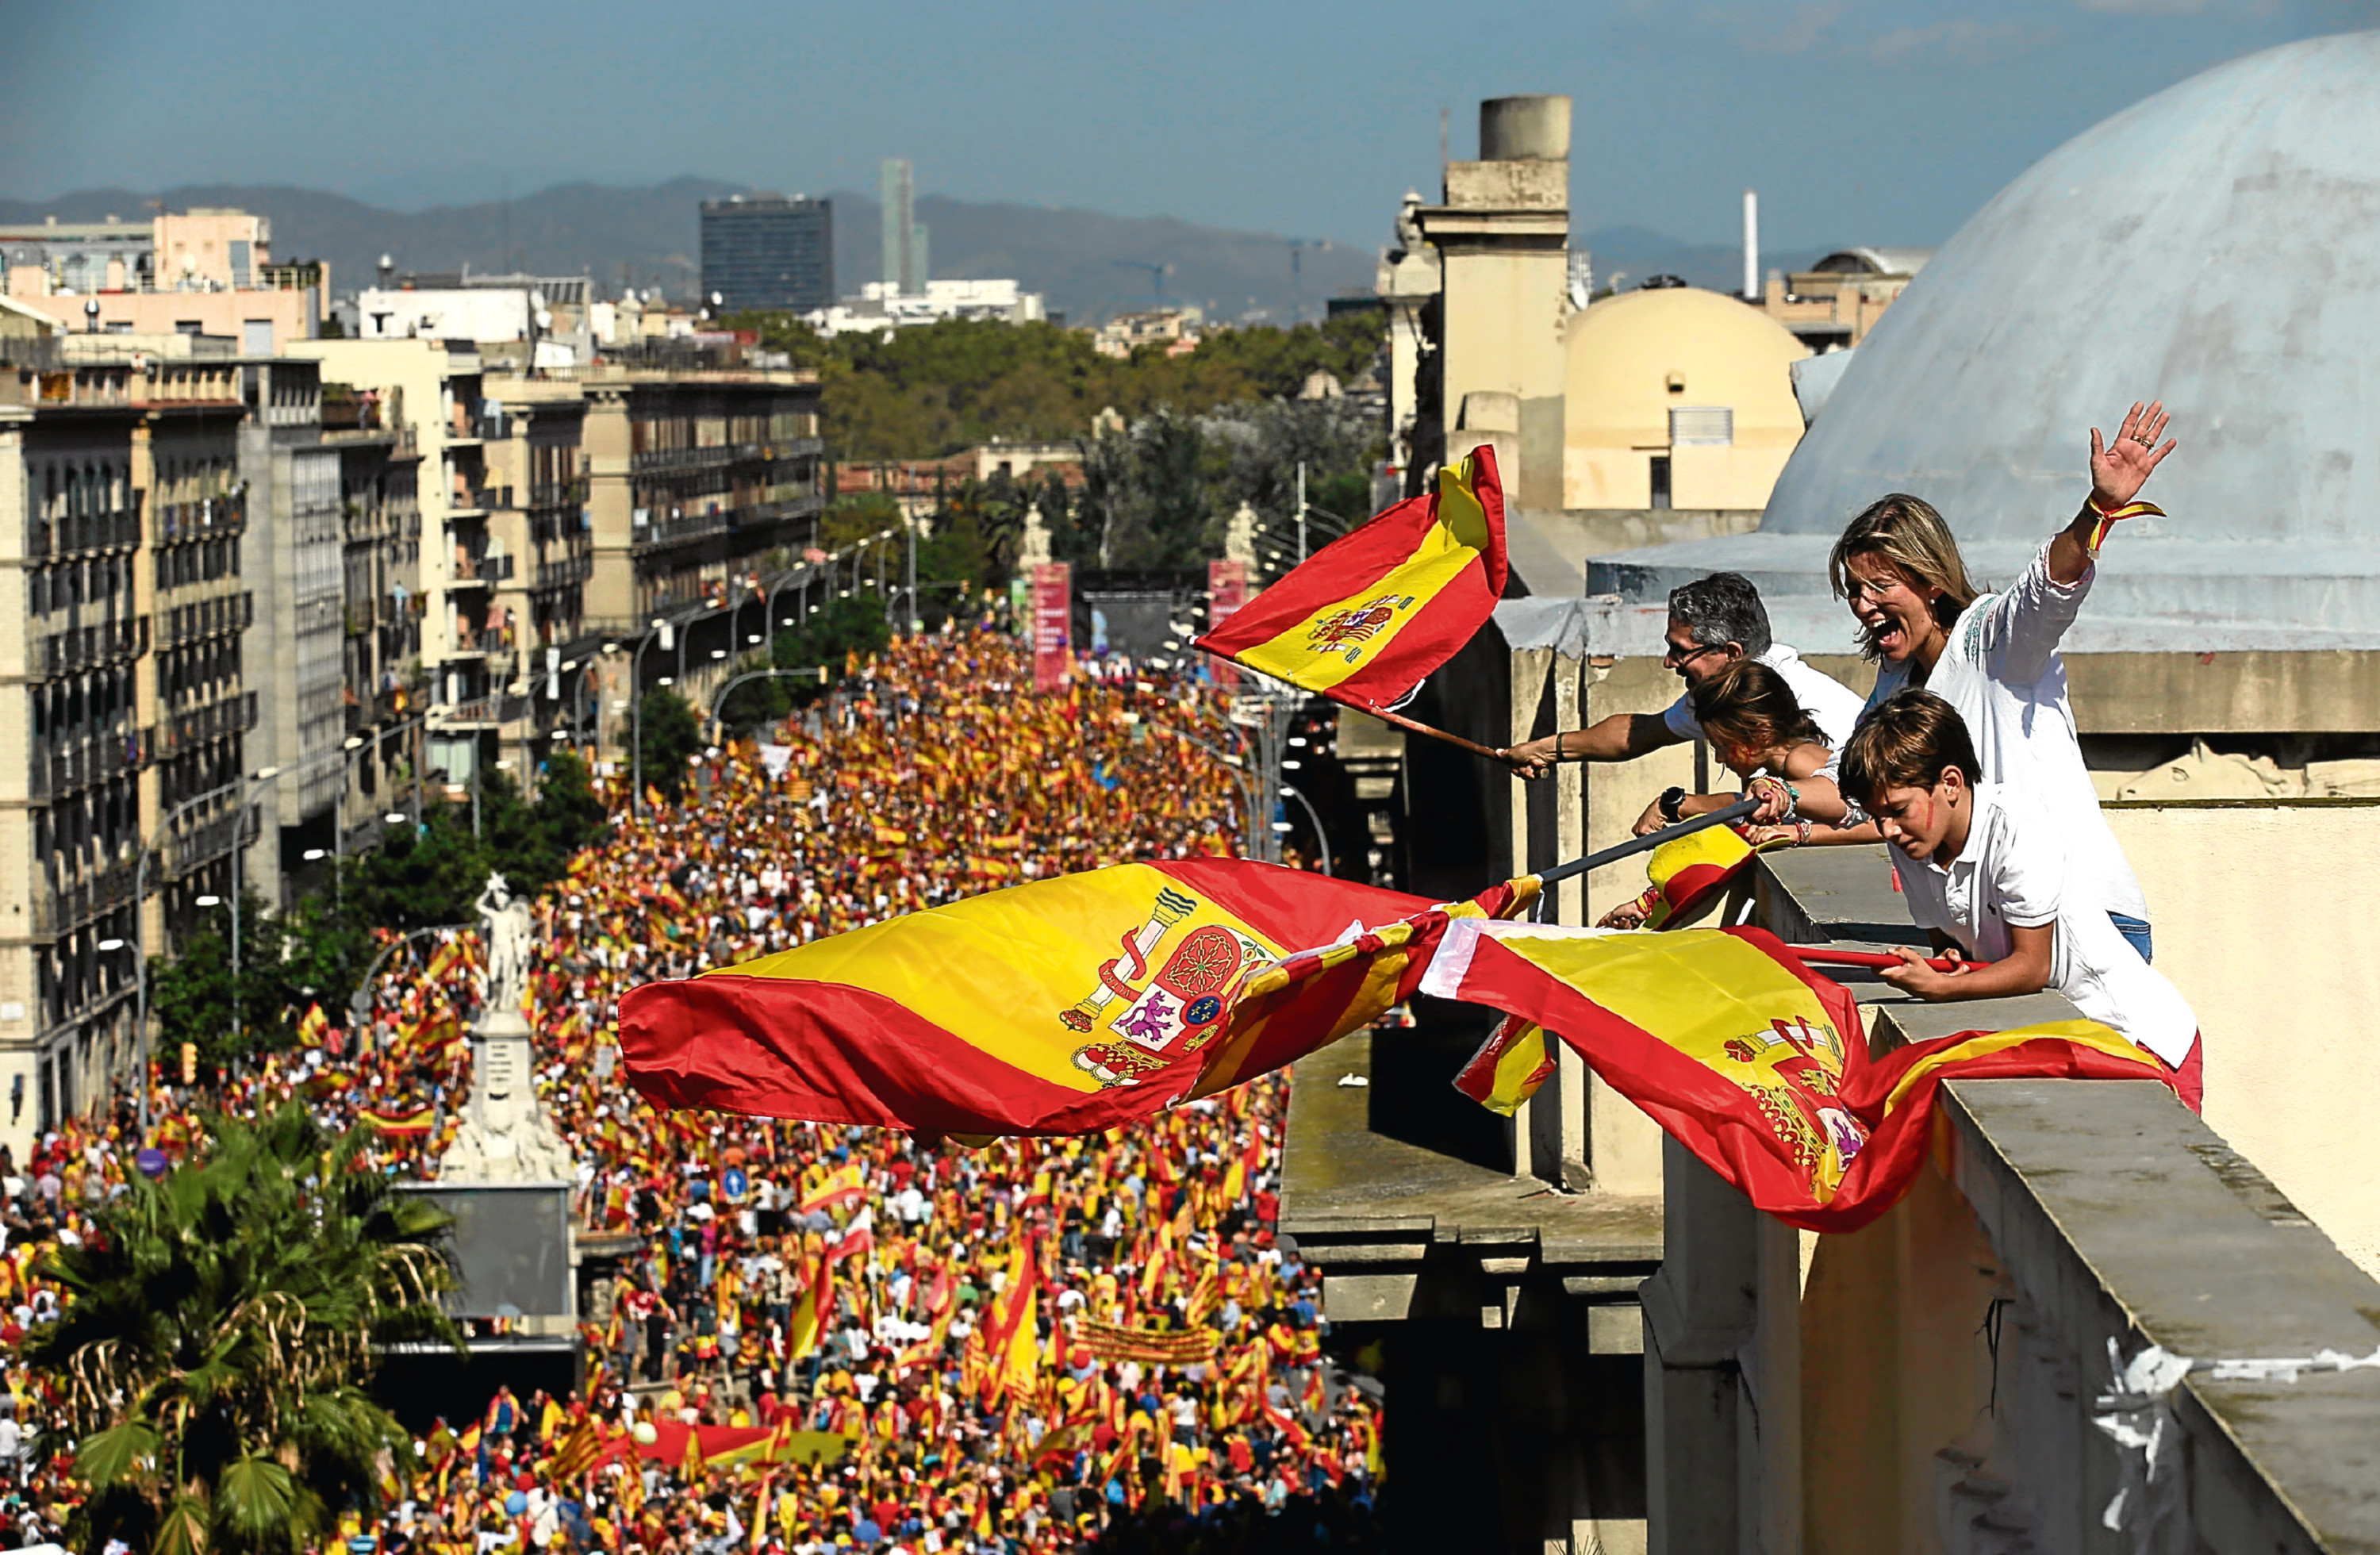 People on a rooftop wave Spanish flags during a march in downtown Barcelona, Spain, to protest the Catalan government's push for secession from the rest of Spain, Sunday Oct. 8, 2017. (AP Photo/Manu Fernandez)